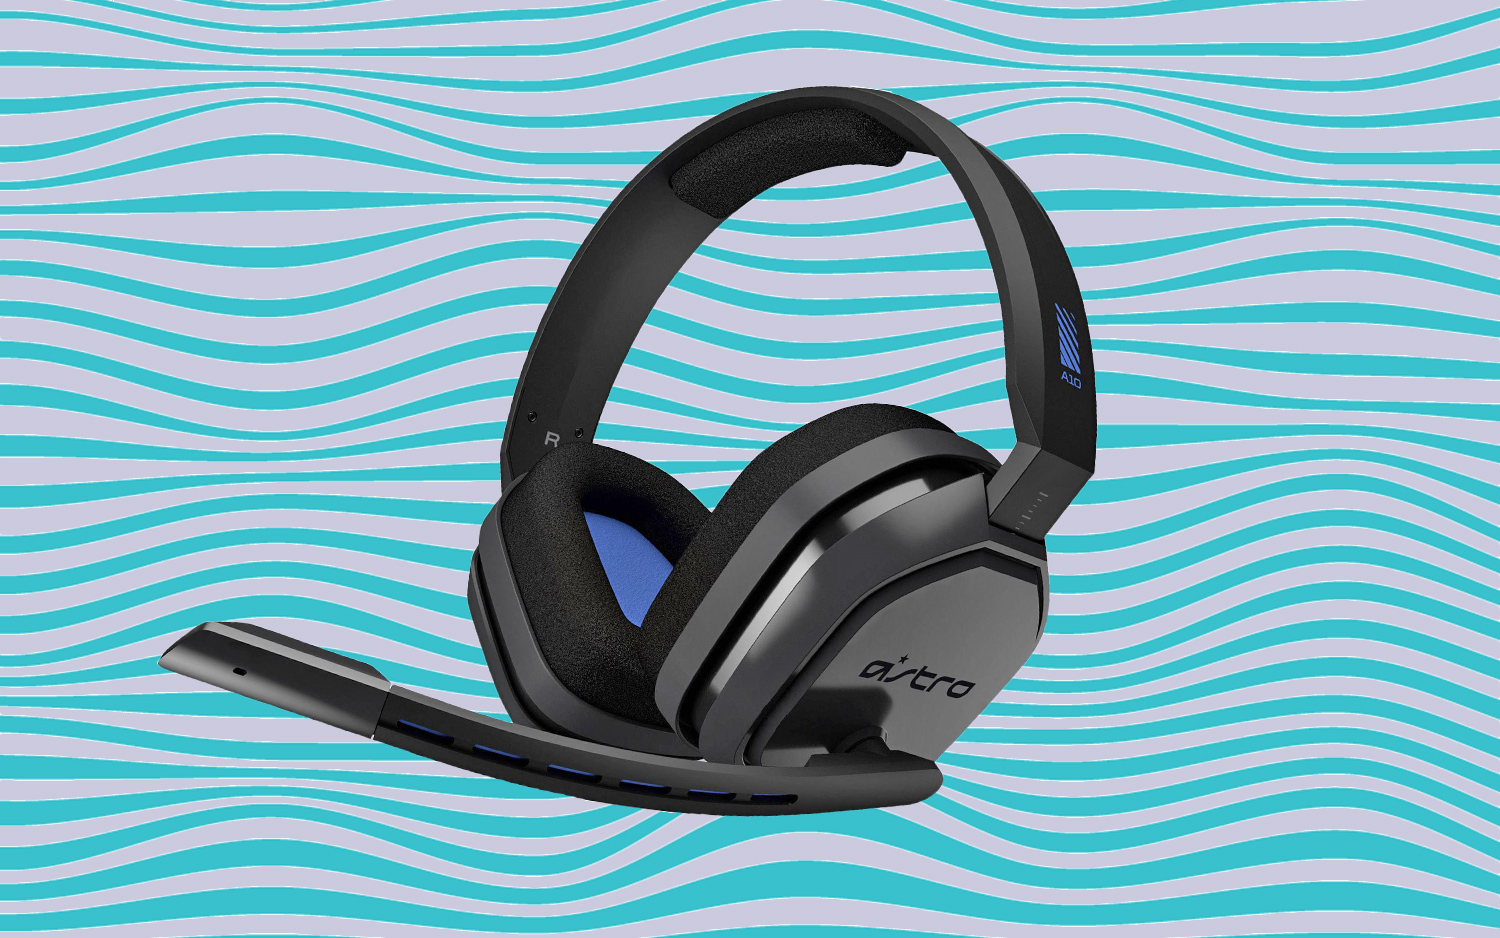 Best headsets for PS5: Astro A10